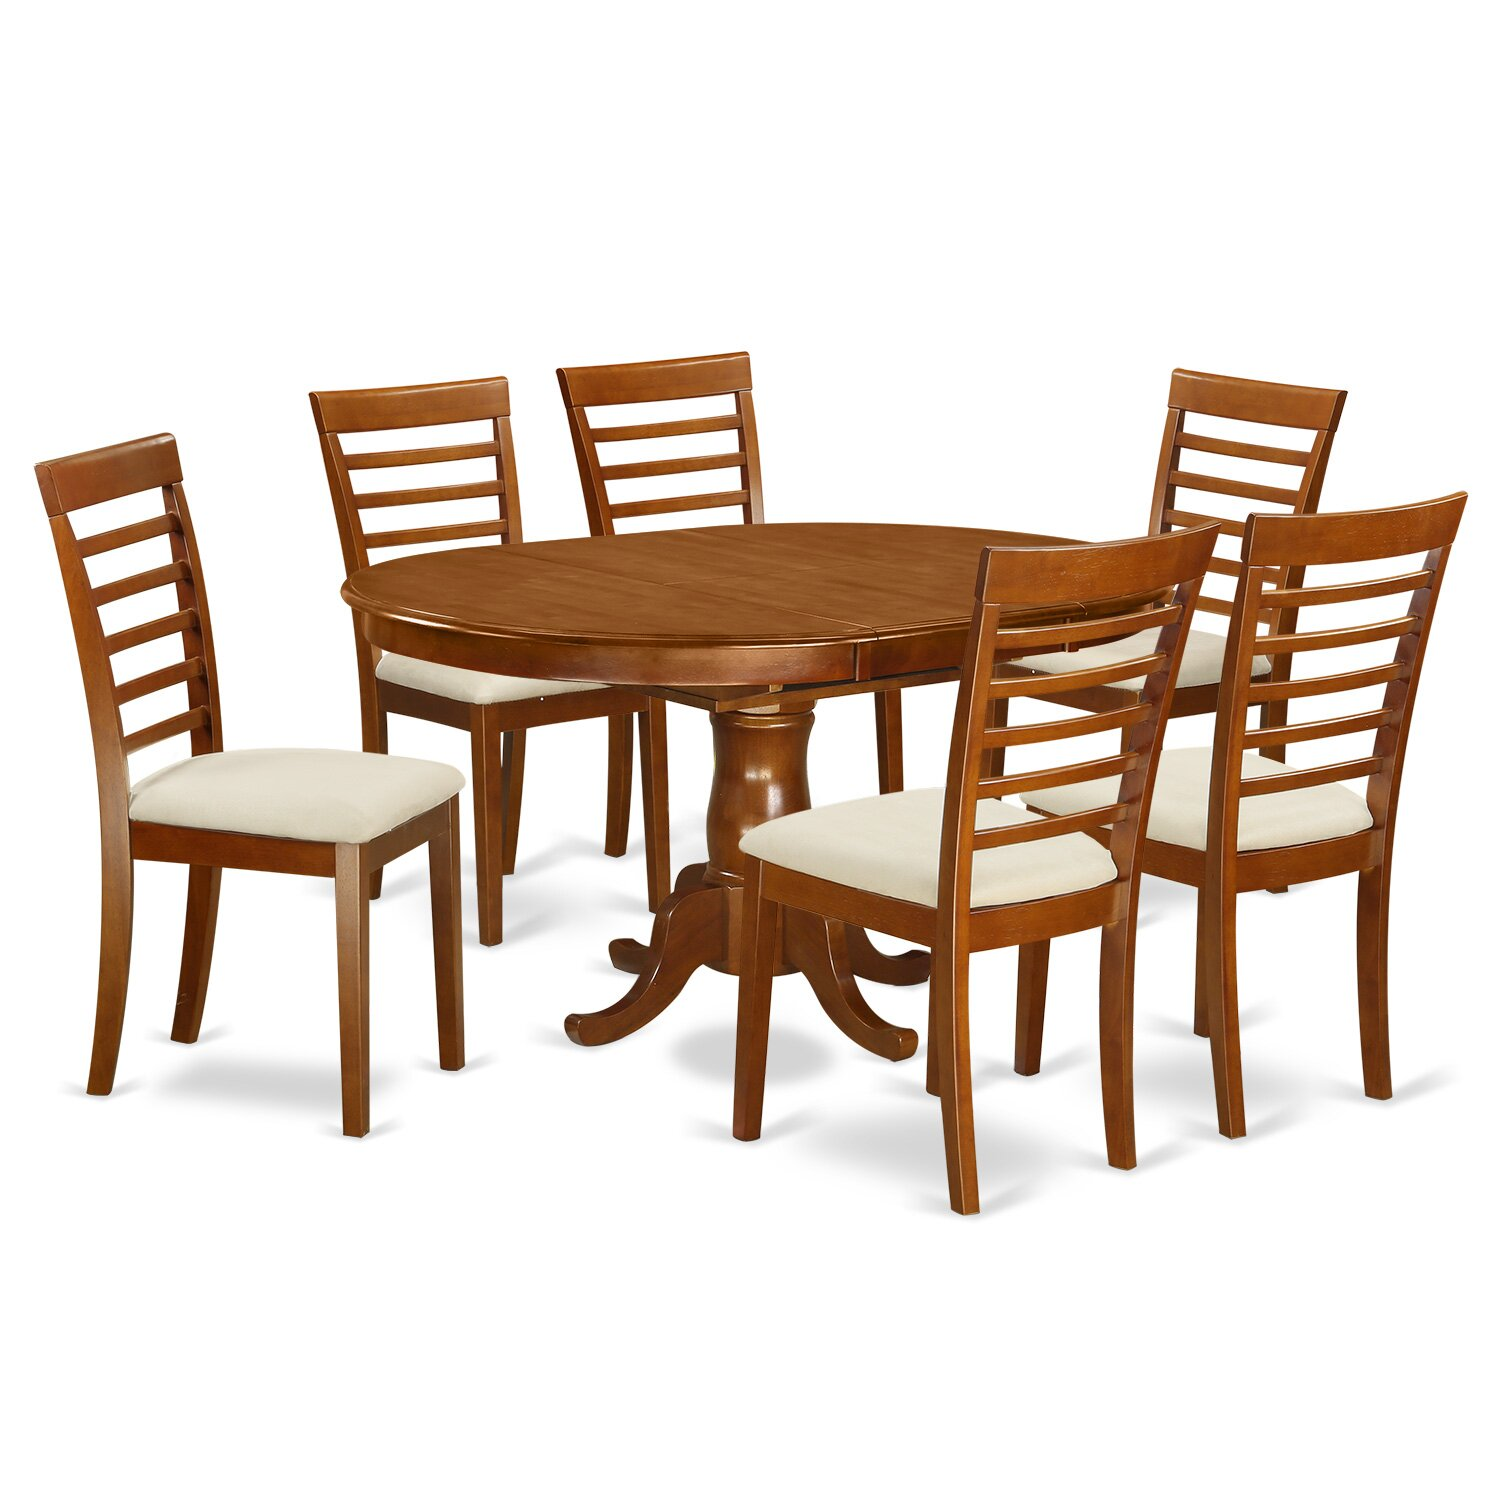 East west portland piece dining set reviews wayfair